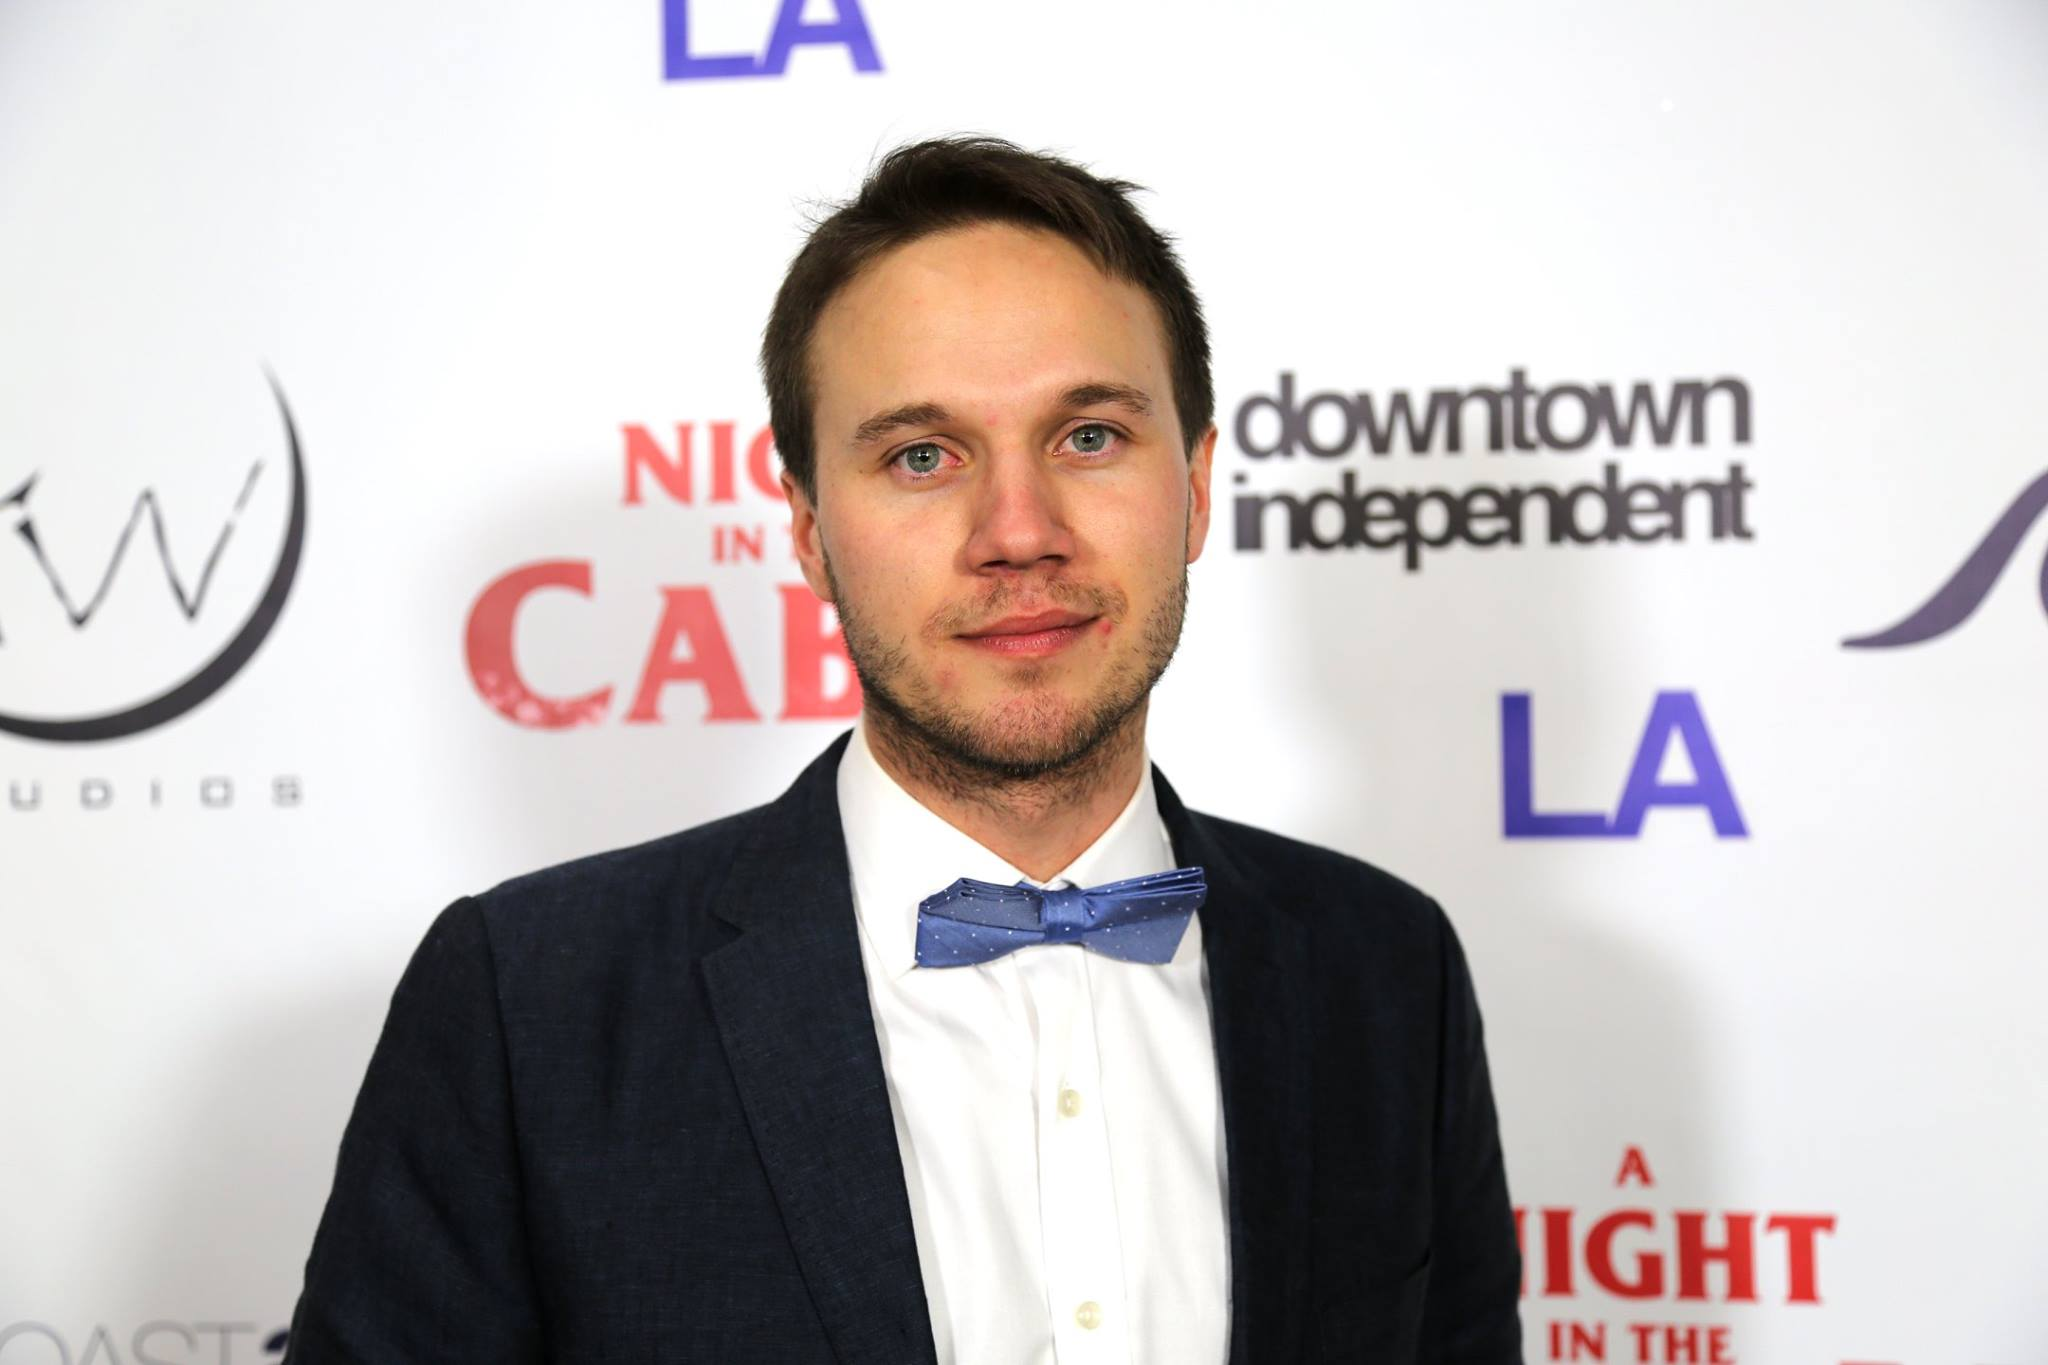 At the LA premiere of A Night in the Cabin